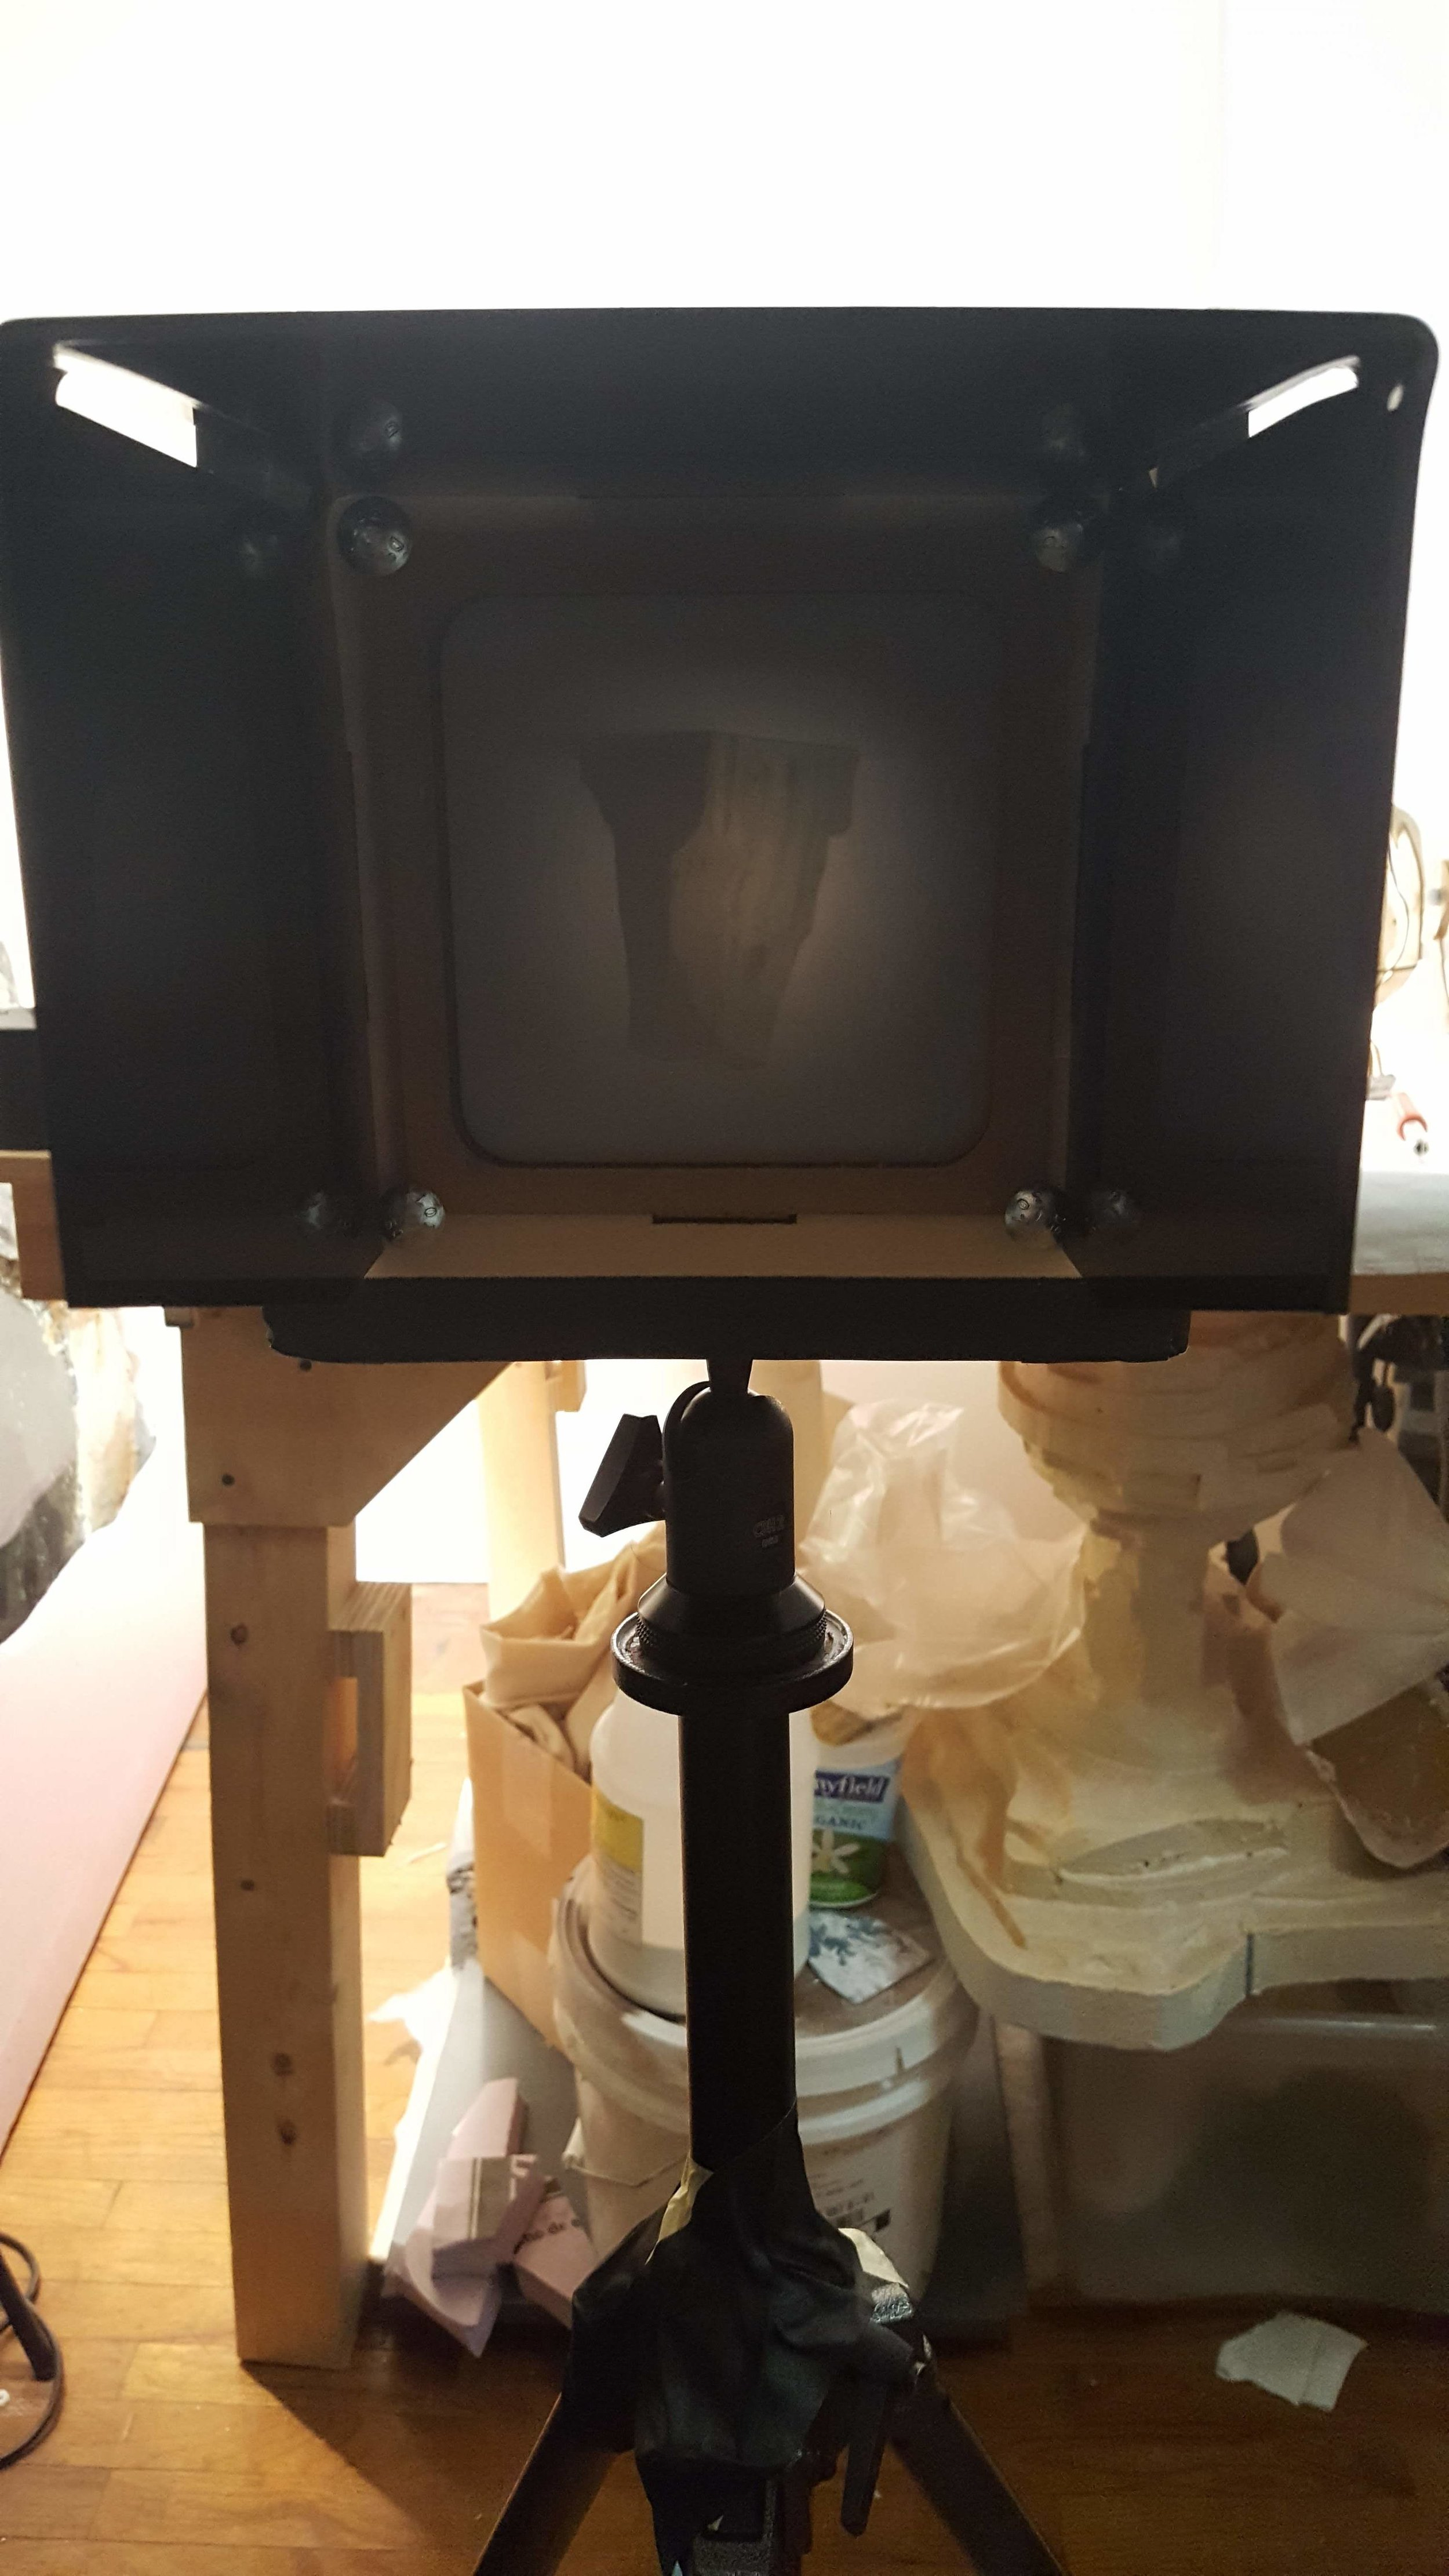 Obscura device for capturing video